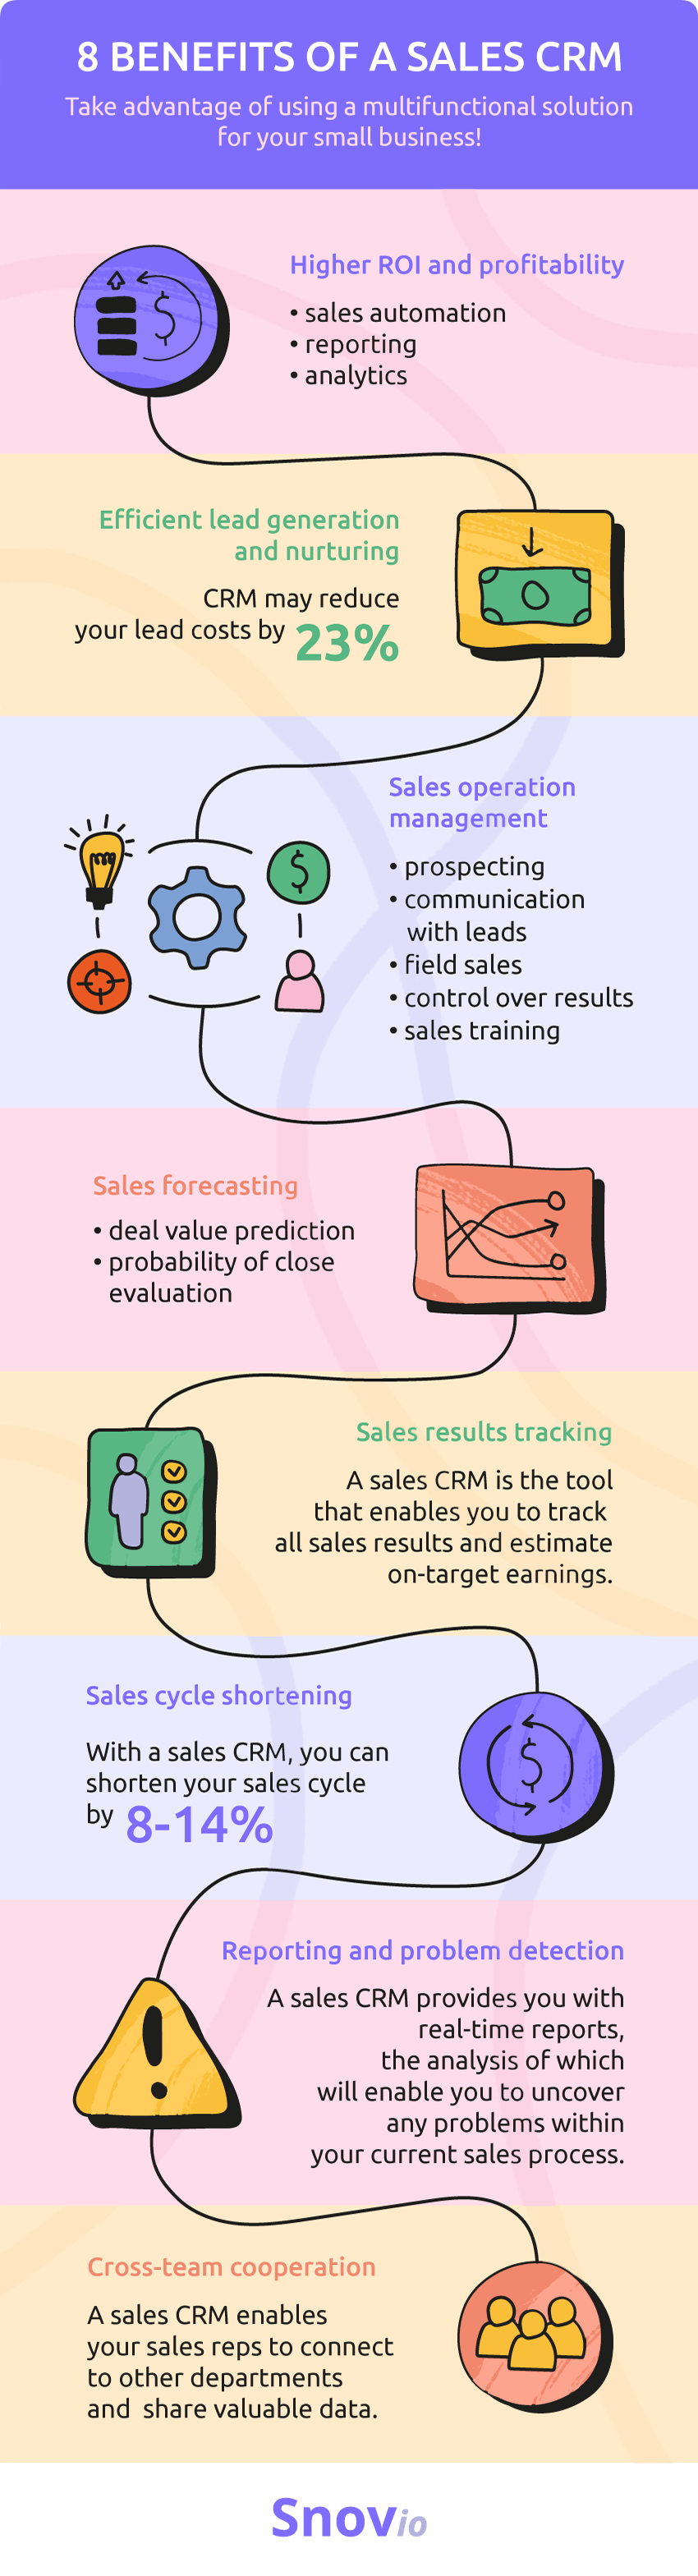 Benefits of using a sales CRM software